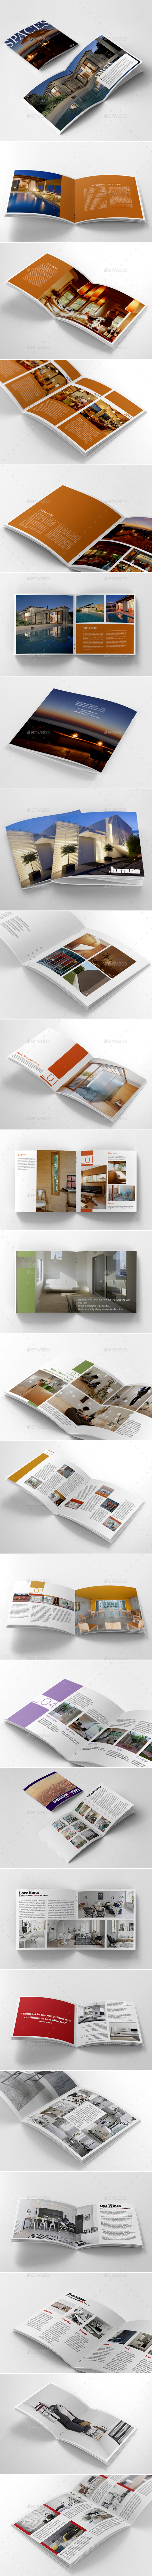 Square Brochures Bundle Pack - Brochures Print Templates